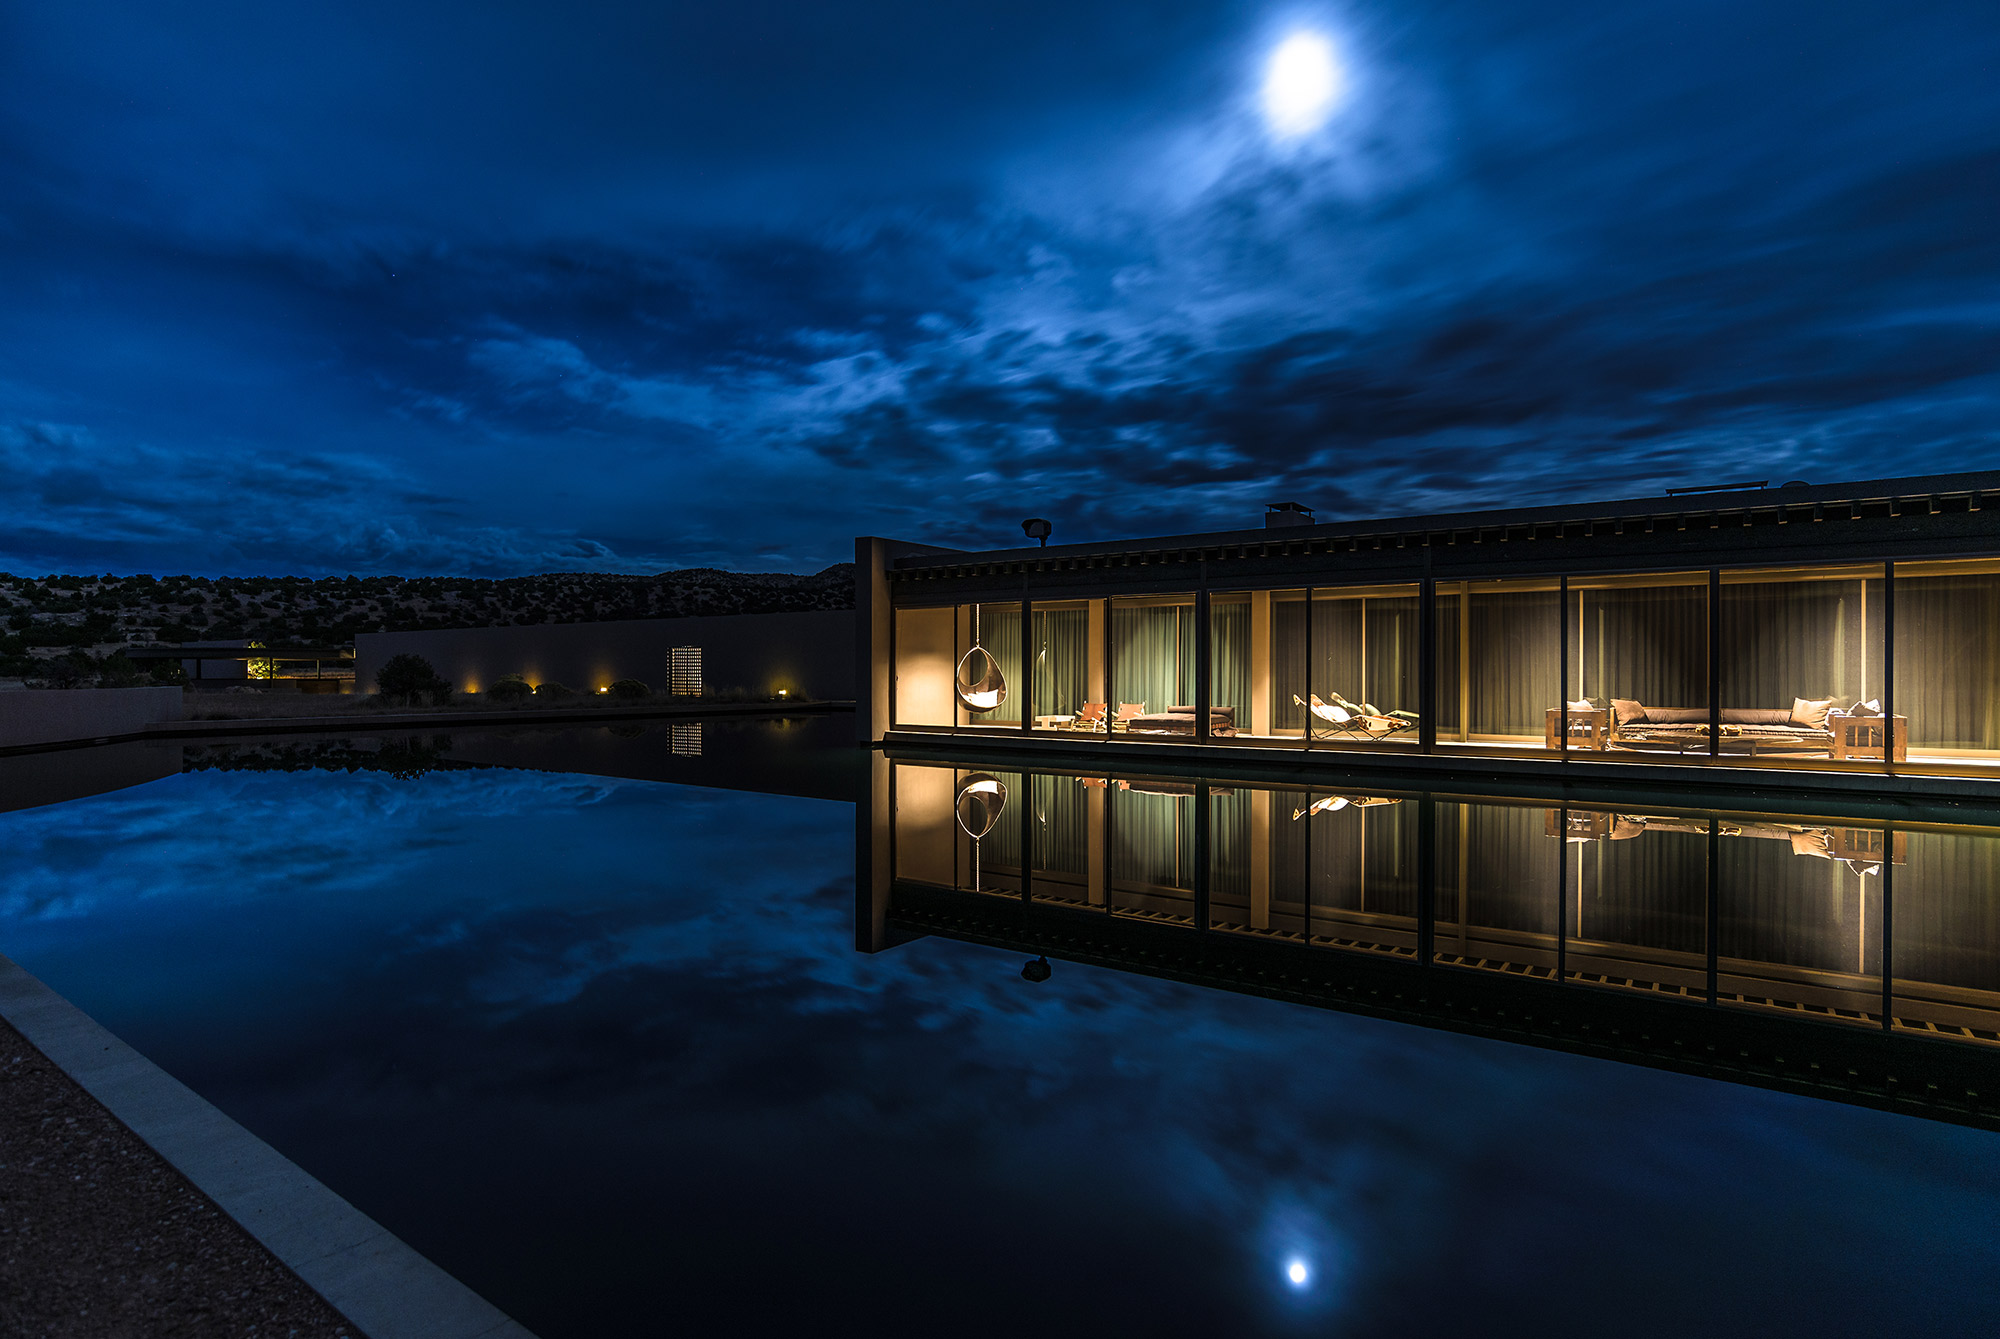 Tom Fords Galisteo Basin Ranch On Market For 75m Local News Beauty Barn Mom Lit Up Water Photo Gallery